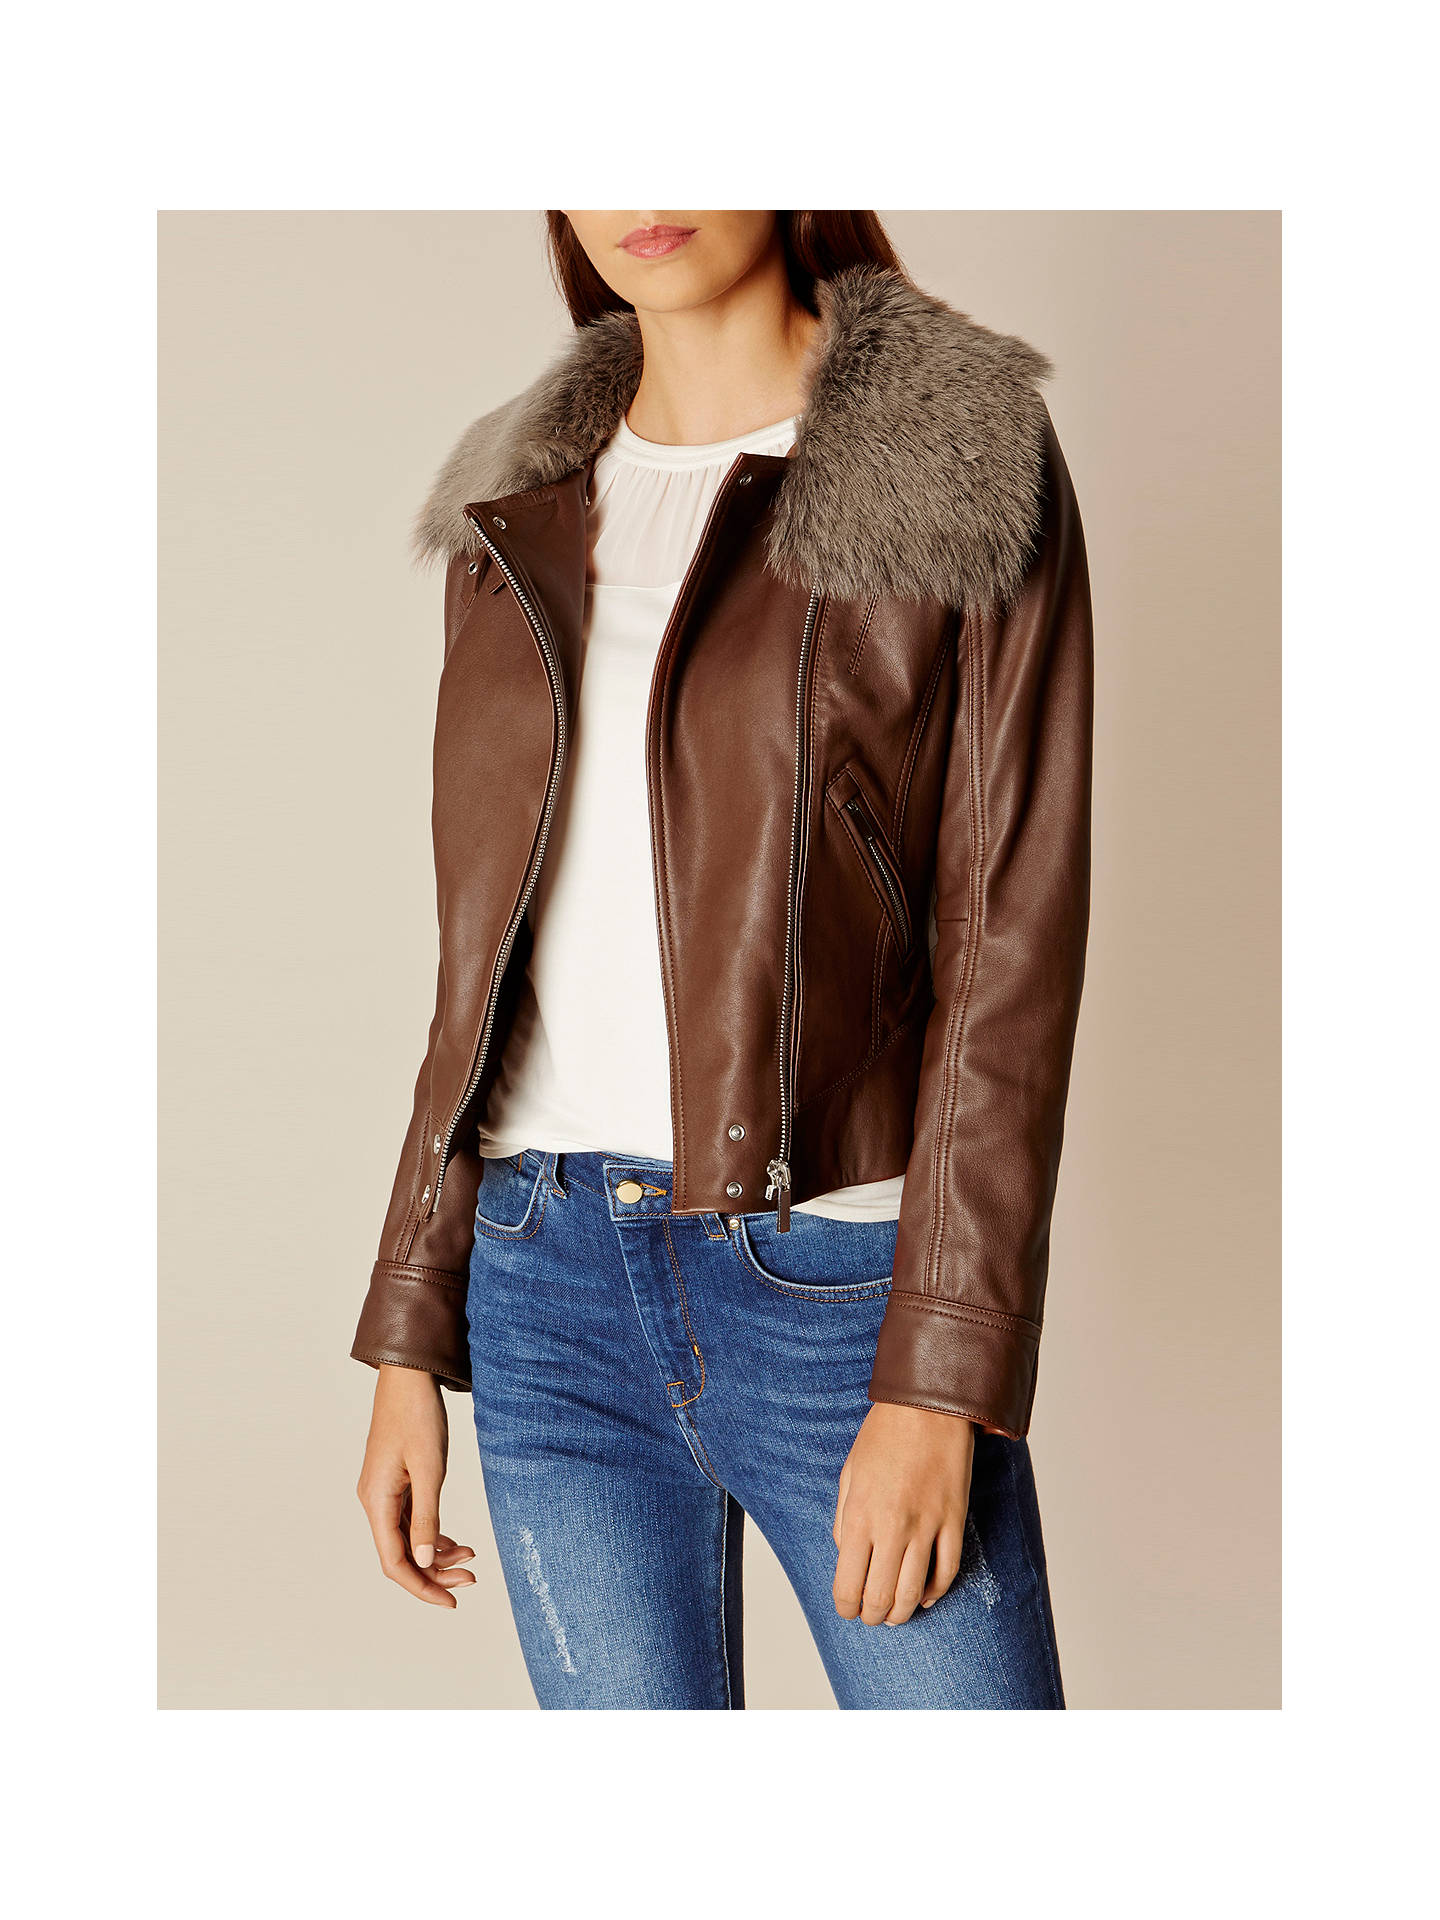 competitive price uk cheap sale search for official Karen Millen Faux Fur Trim Aviator Jacket, Brown at John ...